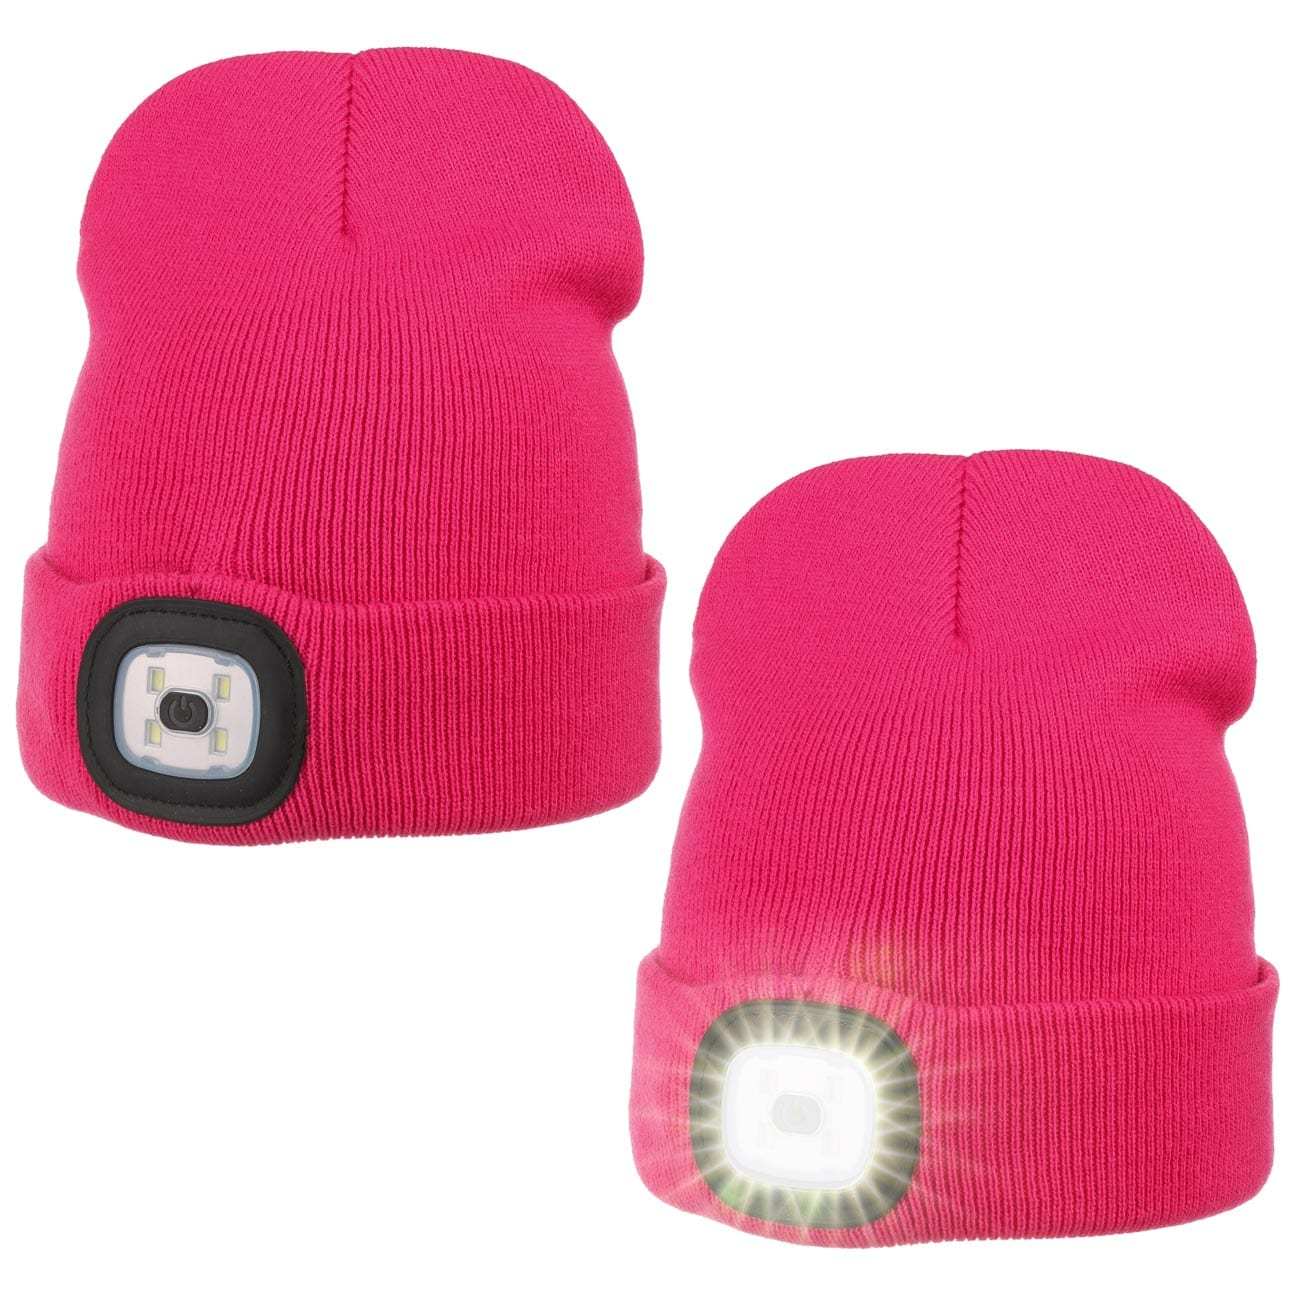 Gorro de Ni?o con Dobles LED by Sterntaler